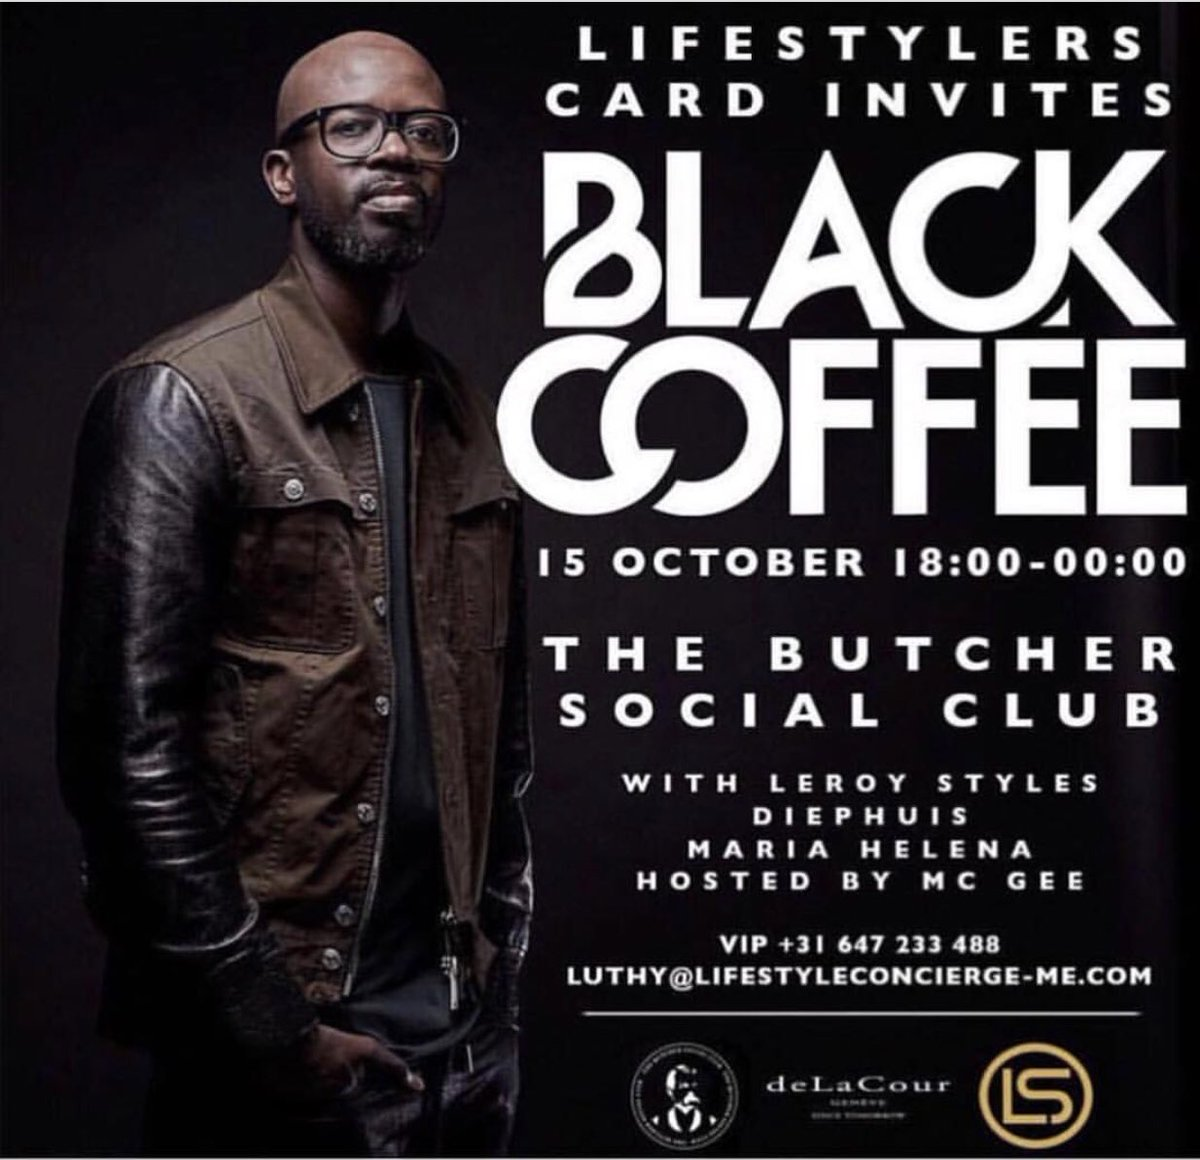 Going out tonight, @realblackcoffee looking forward to watching him doing his thing. #house #deephouse #techno @thebutchersocialclub <br>http://pic.twitter.com/XeYXIzisVv